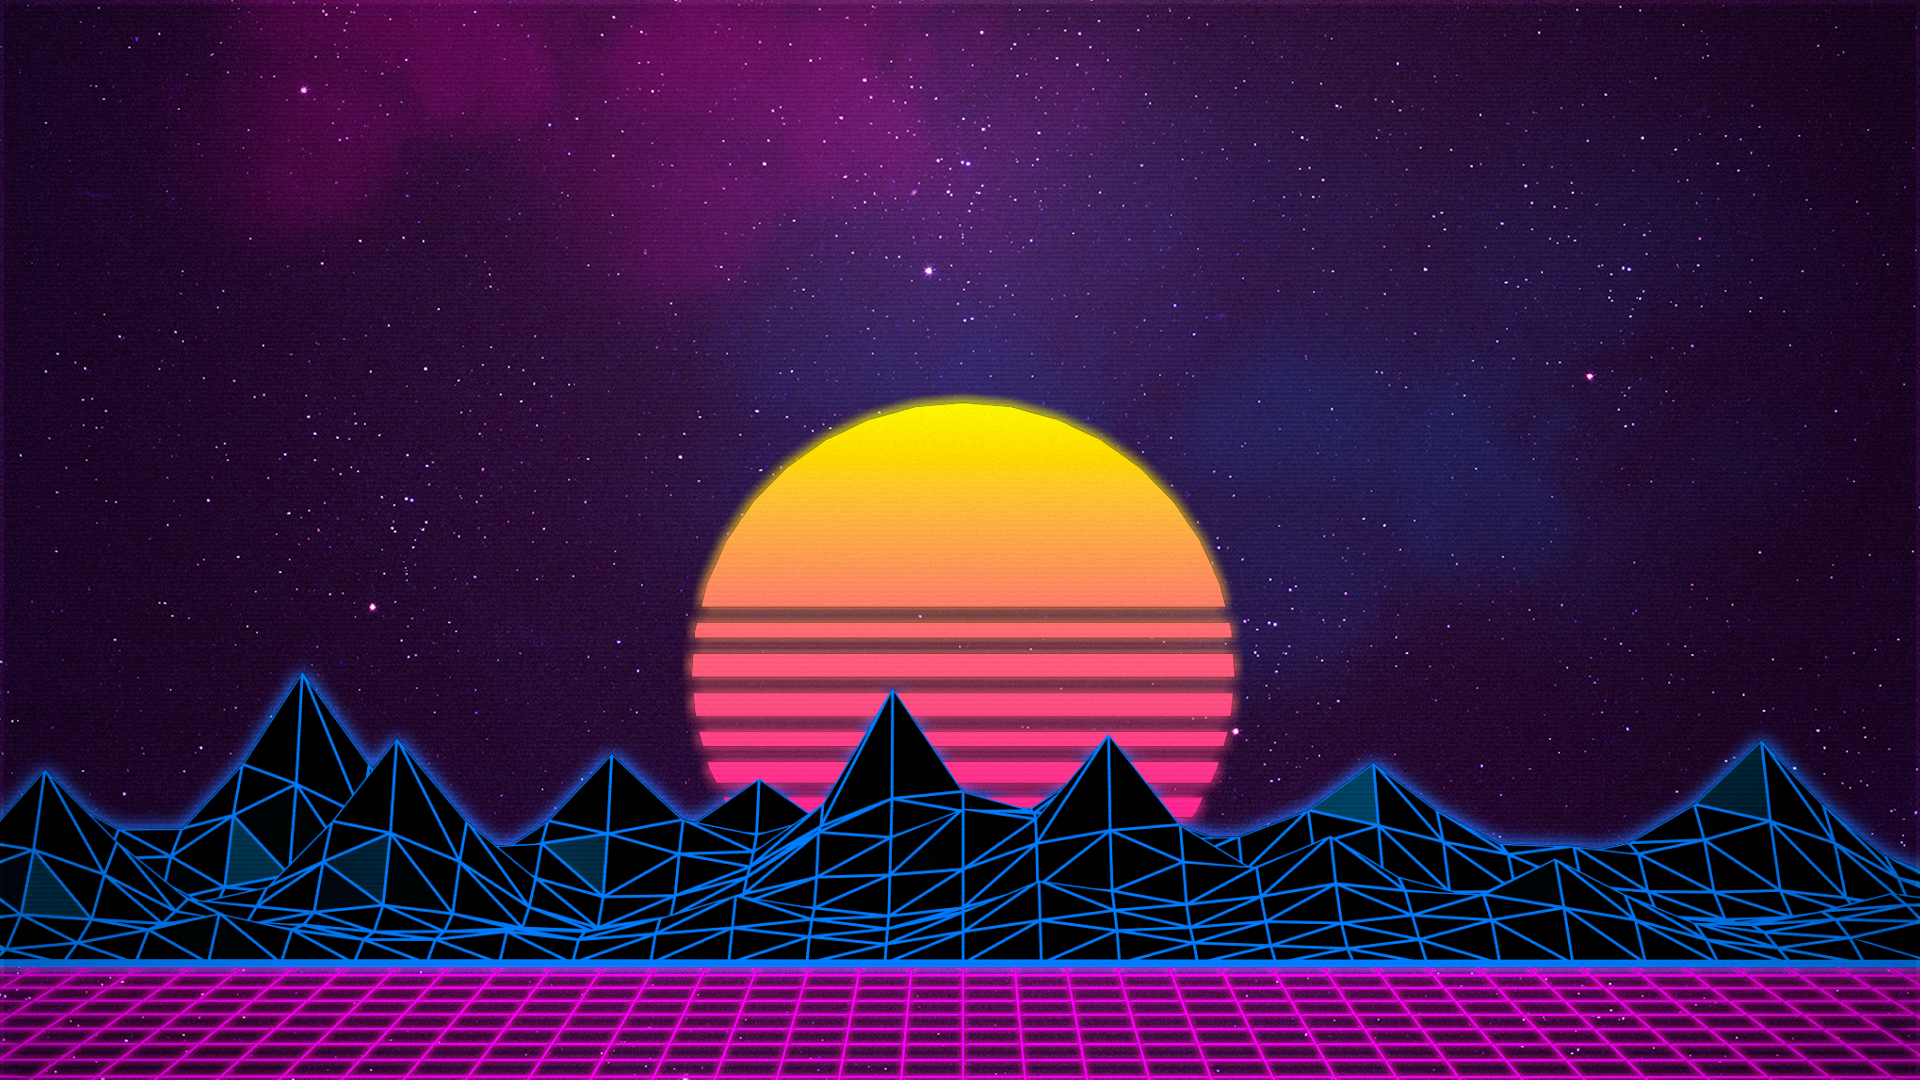 Synthwave/Retrowave - Neon 80s - Background